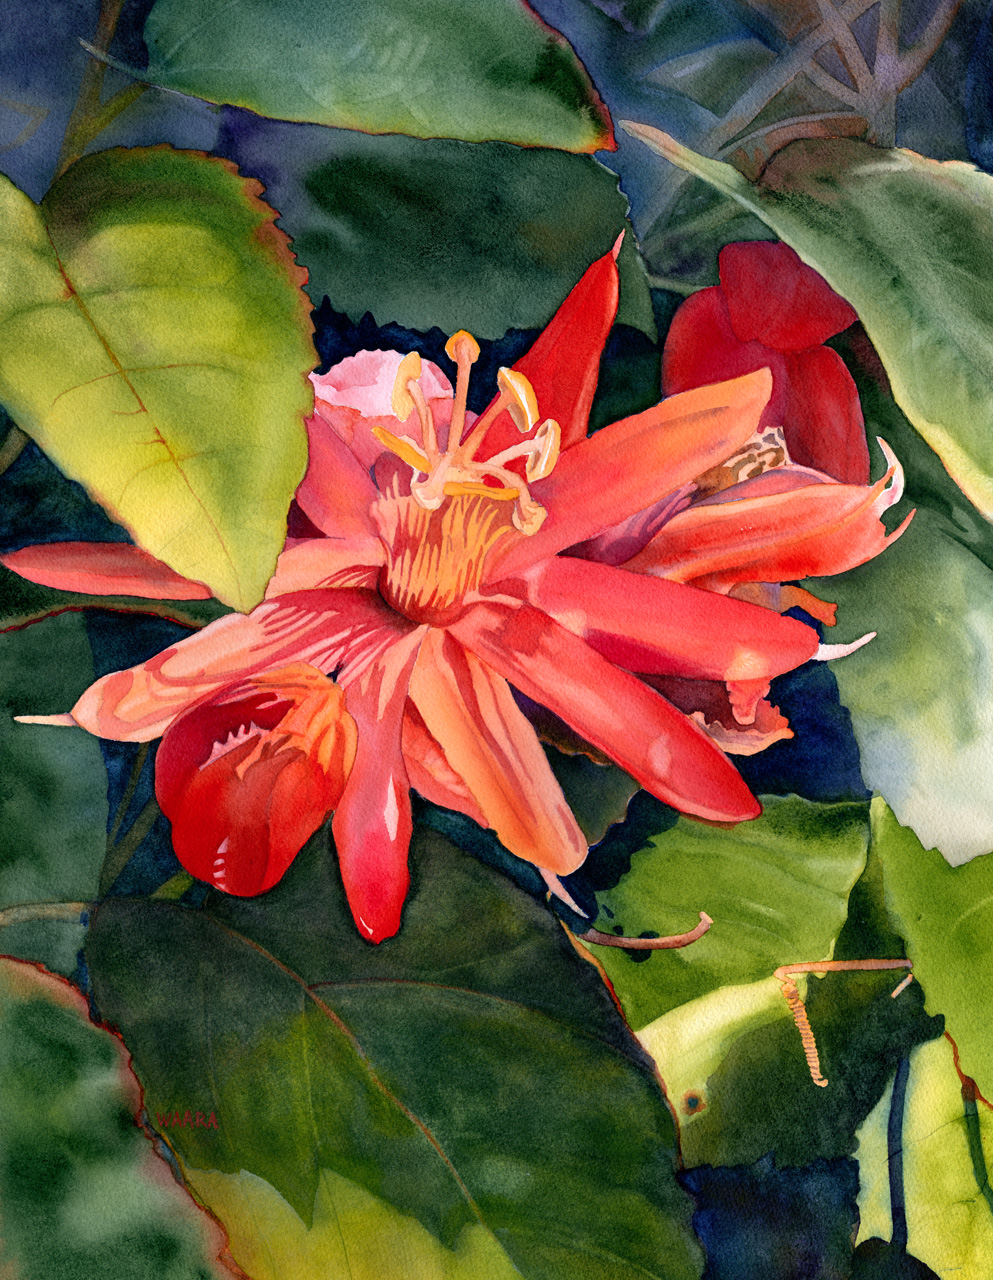 Passion Flower (lilikoi) by watercolor artist Christine Waara